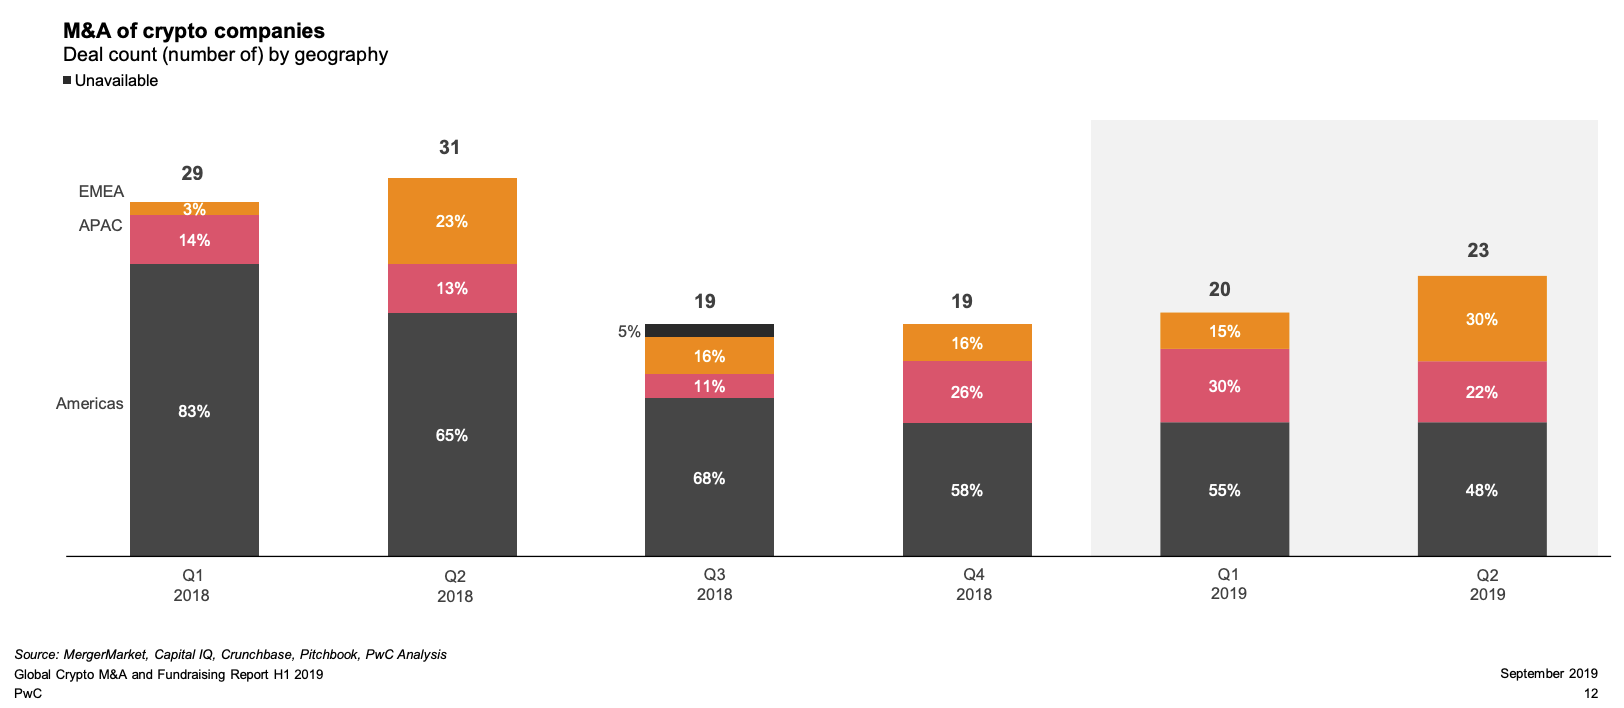 M&A of crypto companies, Deal count by geography, PwC, September 2019